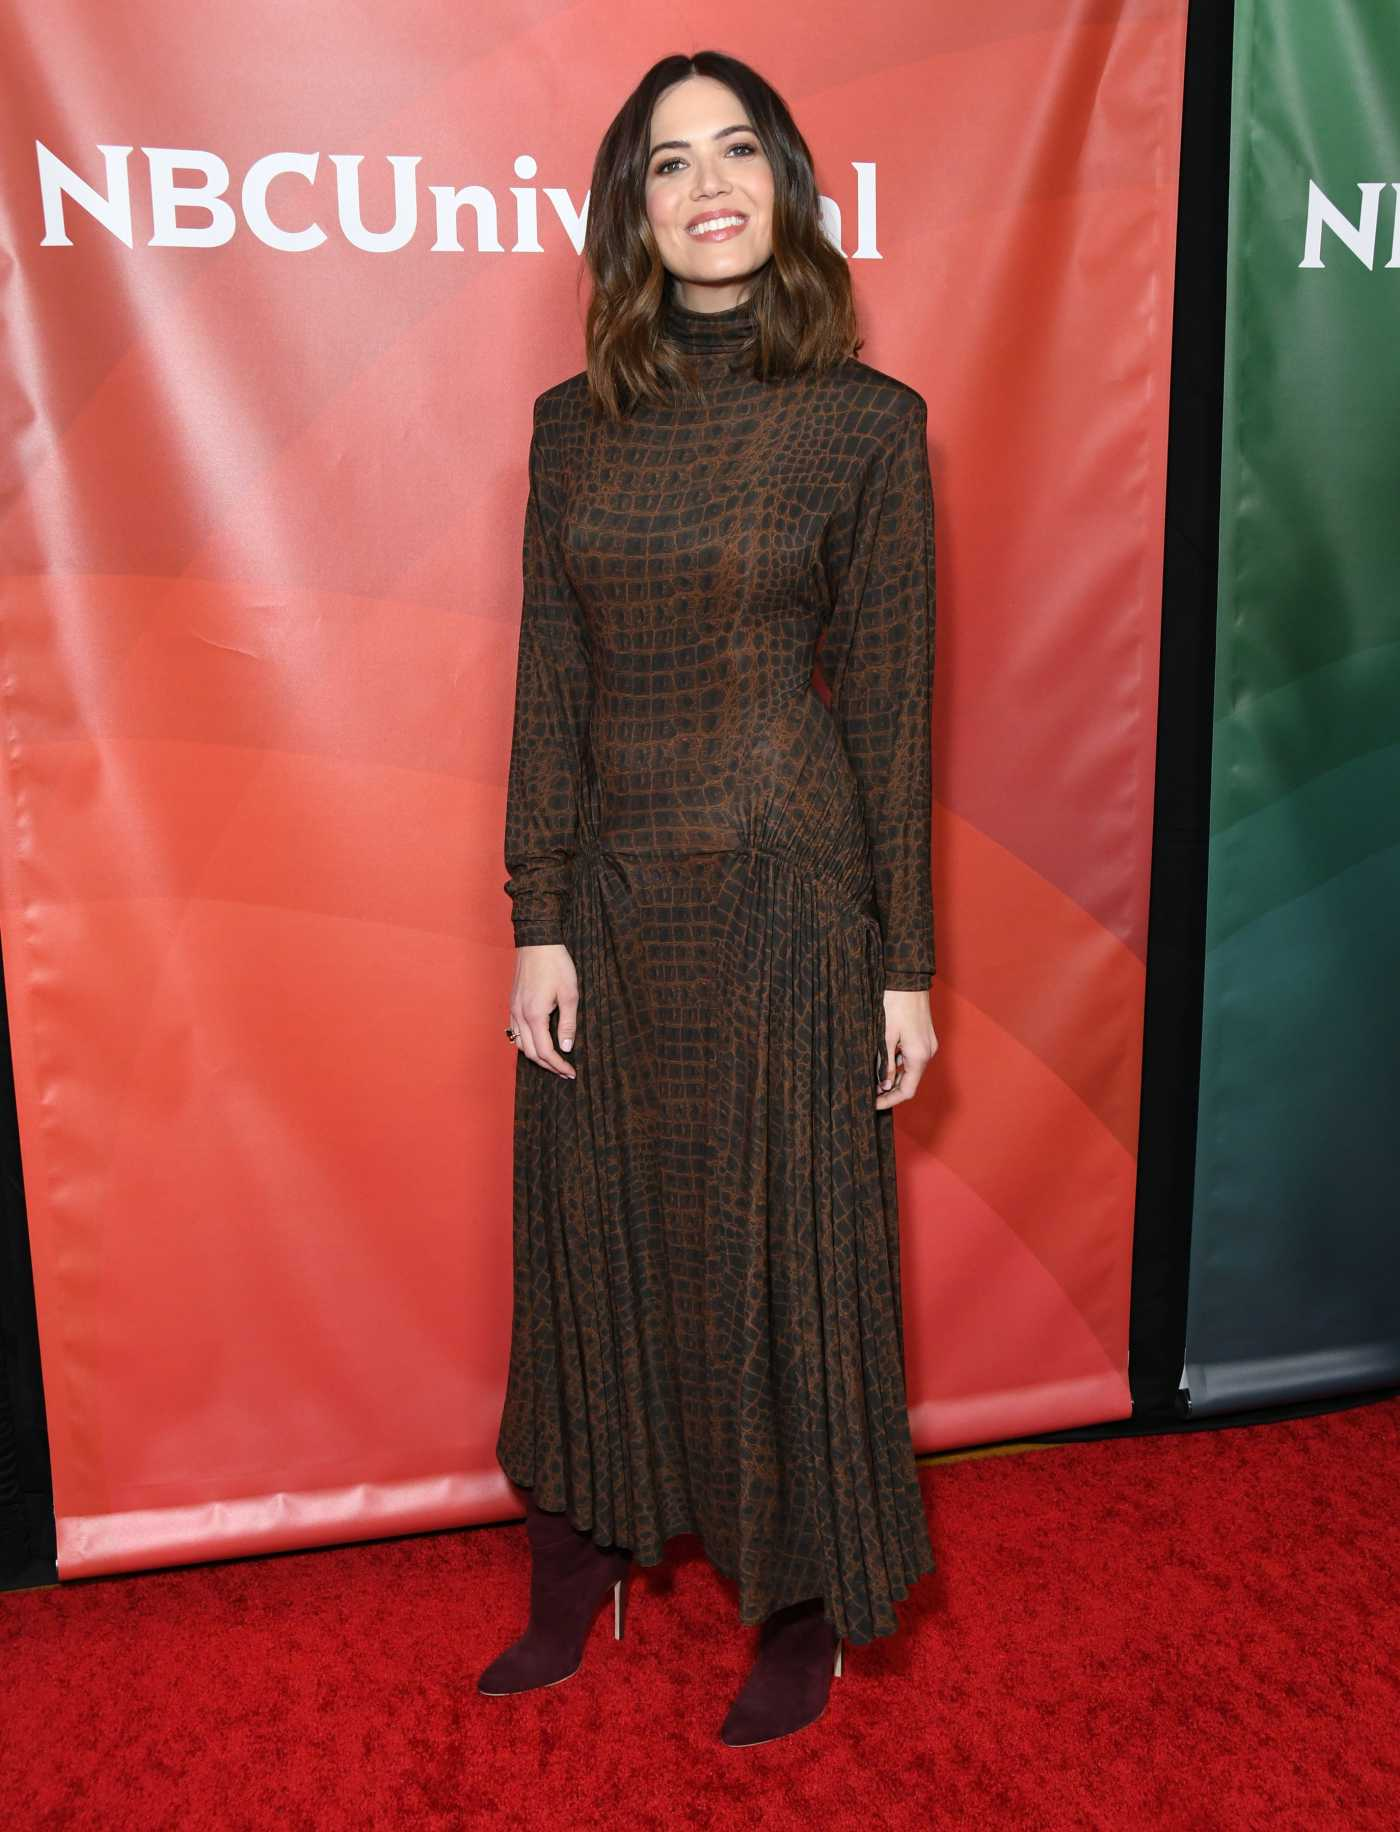 Mandy Moore Attends NBC Universal TCA Winter Press Tour in Los Angeles 01/11/2020